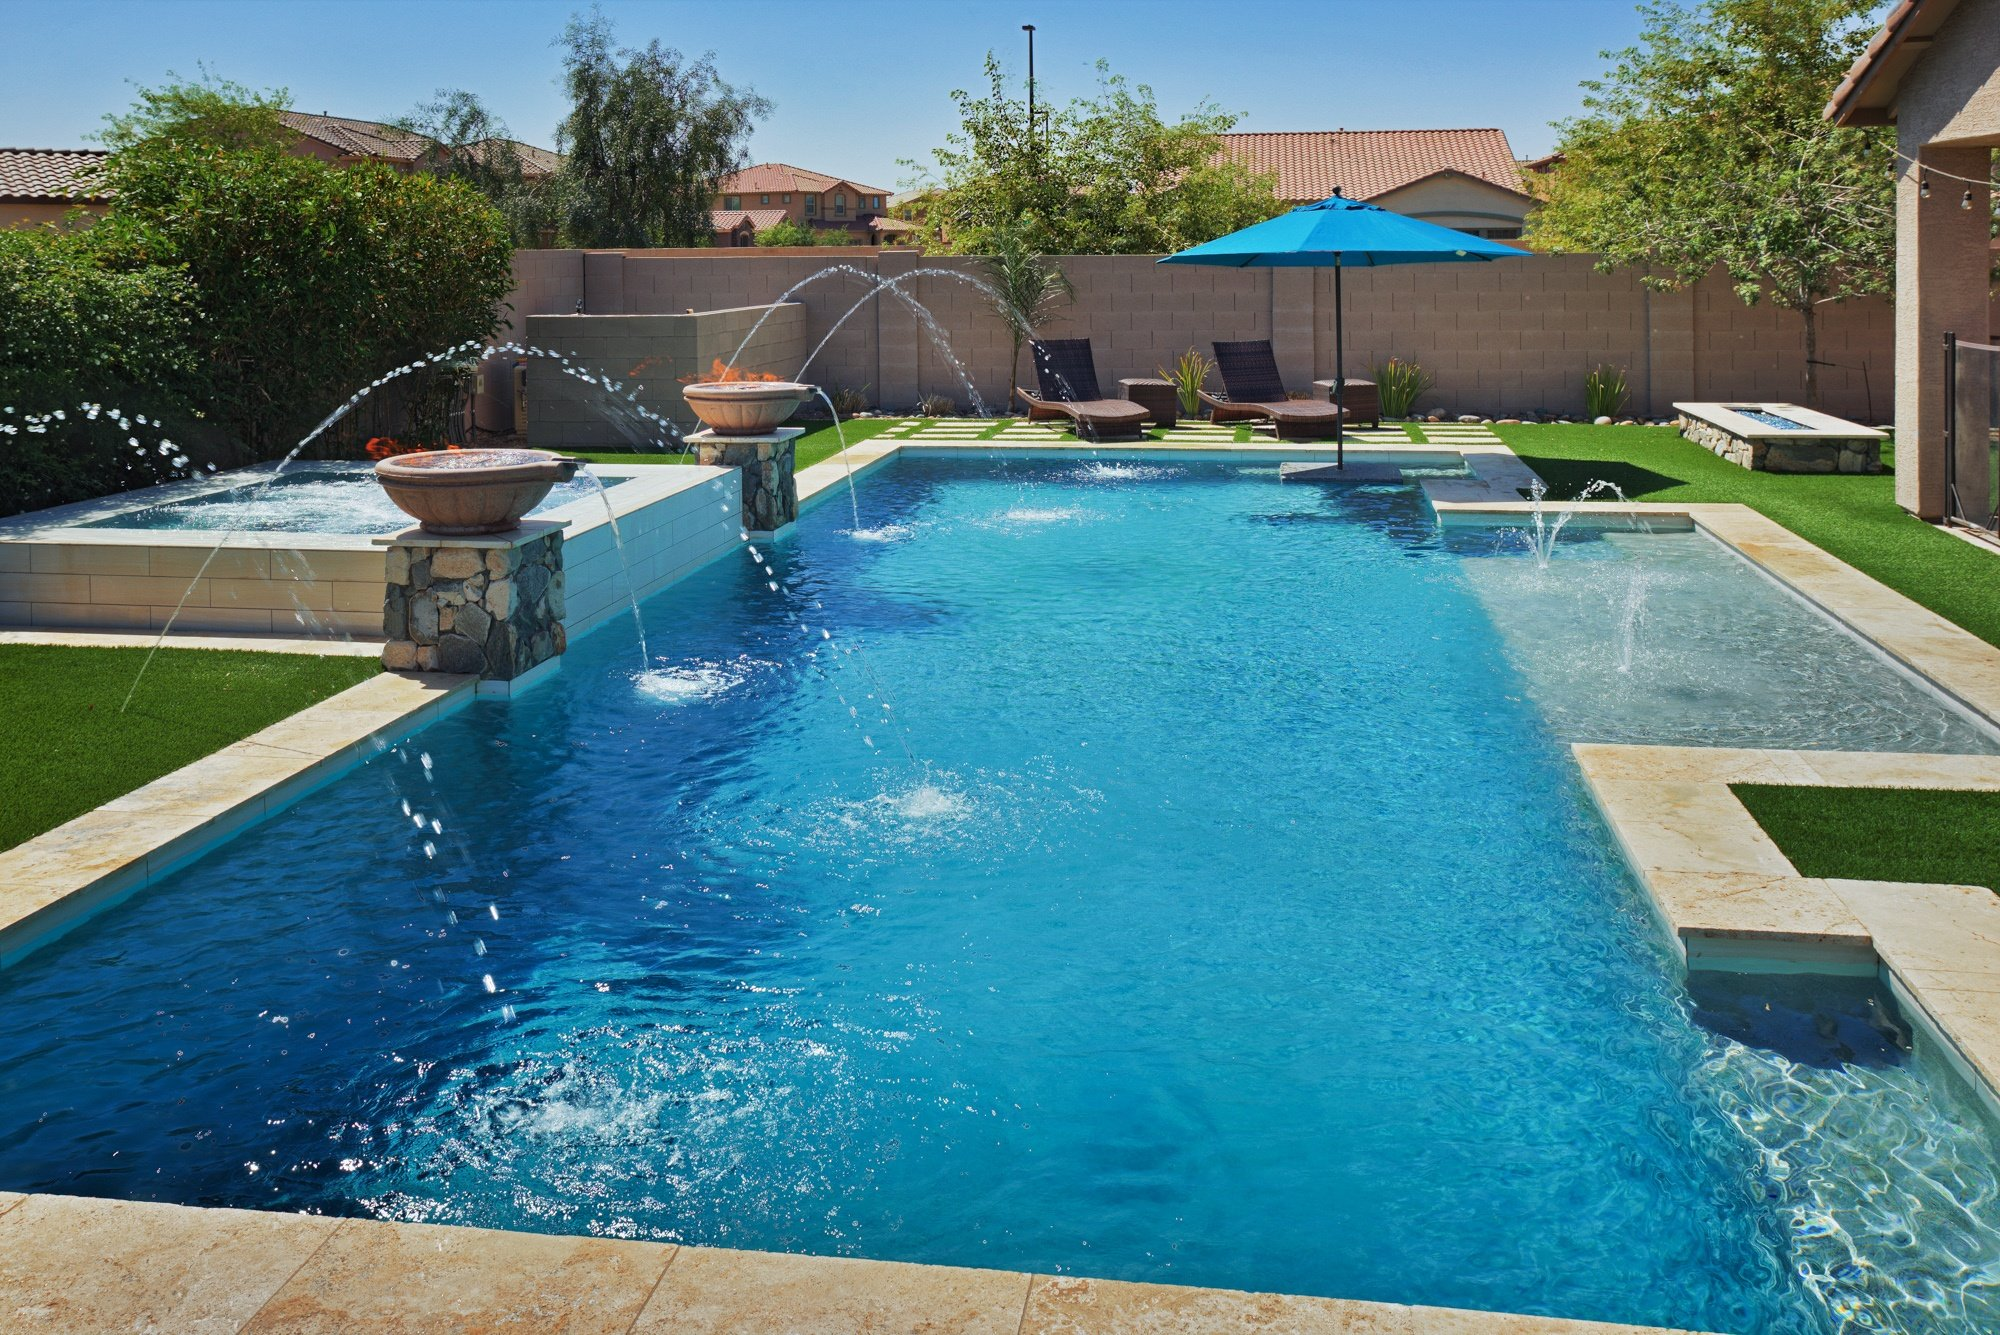 Nick Ludtke Is A Pool Designer At Presidential Pools, Spas U0026 Patio. After  Being In The Pool Business As Long As Nick Has, He Knew Exactly What  Features Were ...